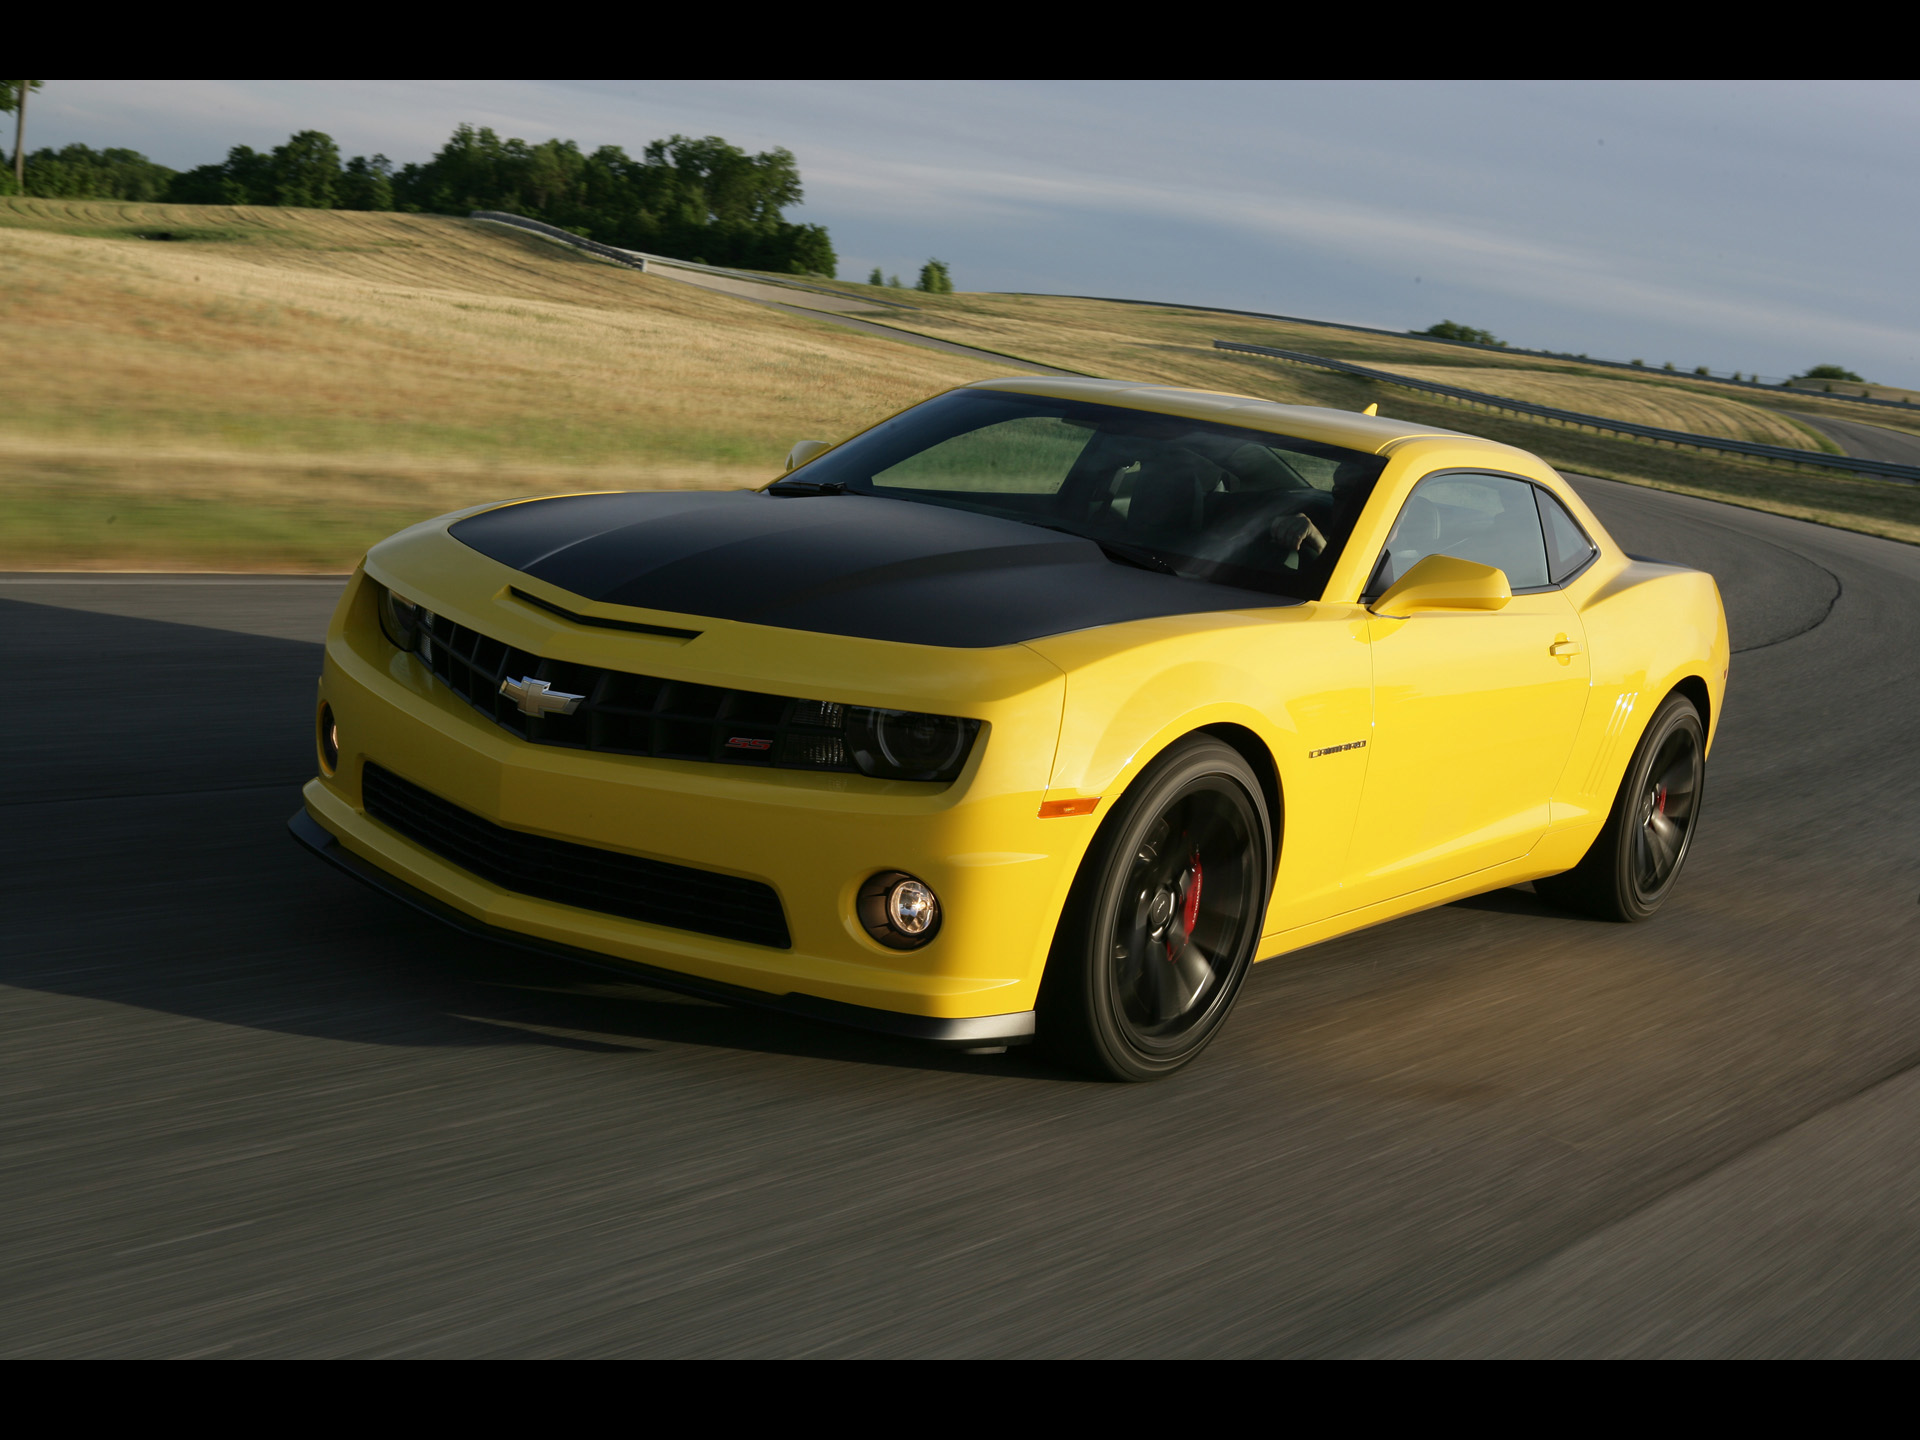 2013 Chevrolet Camaro 1LE Yellow Motion Front Angle ...